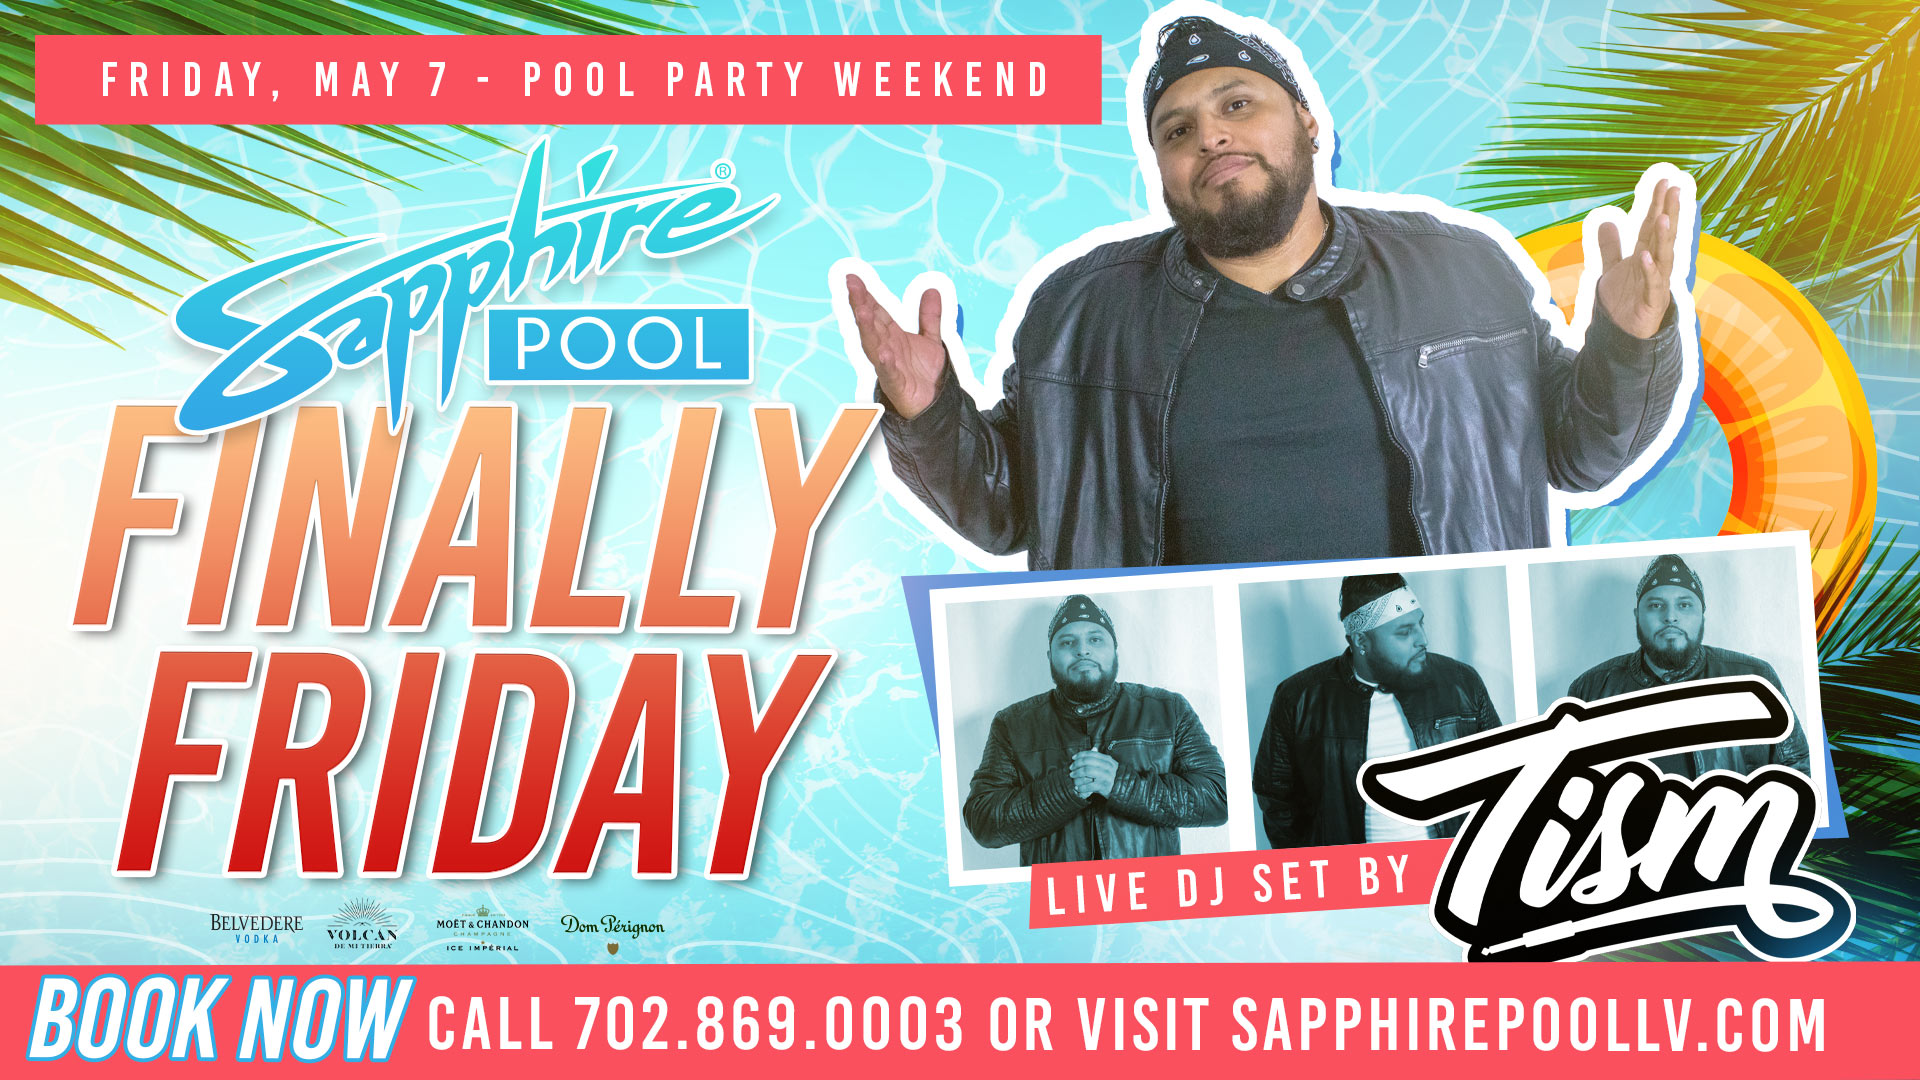 DJ Tism Performs Live For Finally Friday at Sapphire Pool in Las Vegas- May 7th